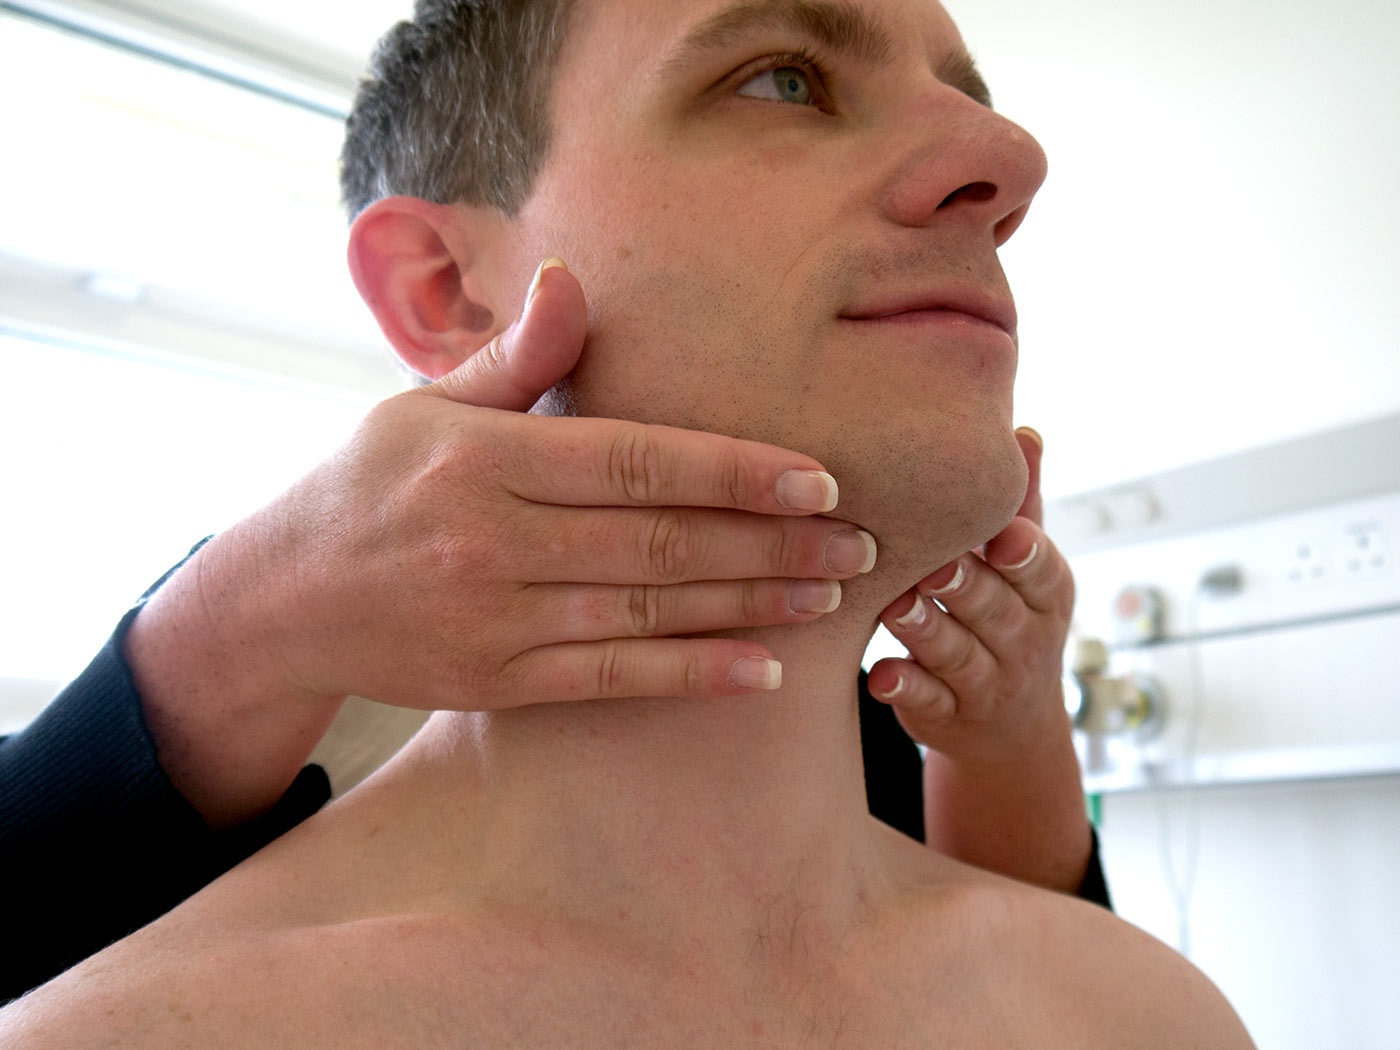 Palpate the submental lymph nodes